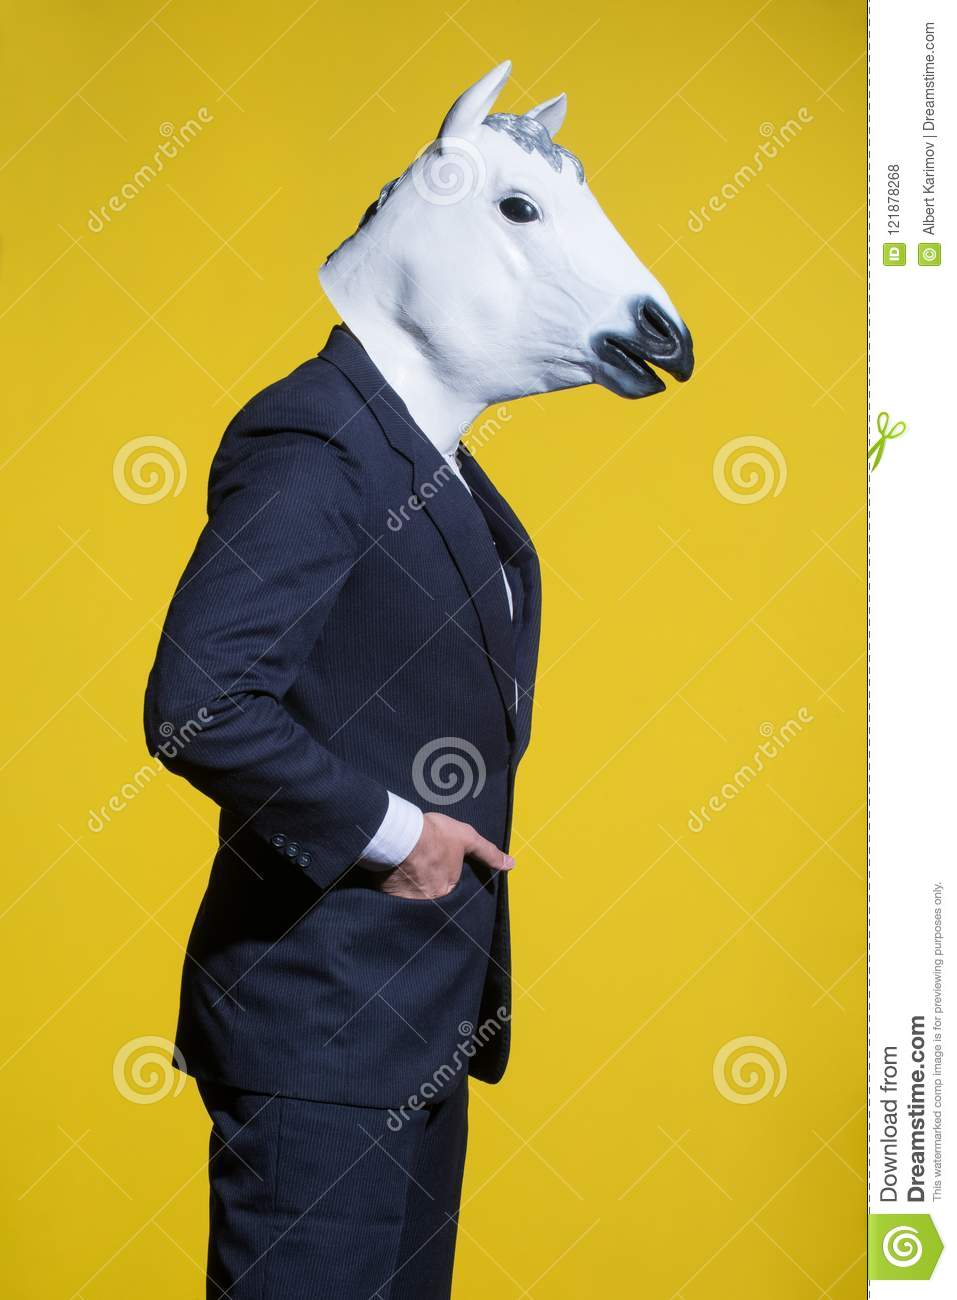 download man with horse mask on yellow background stock photo image of halloween dressed